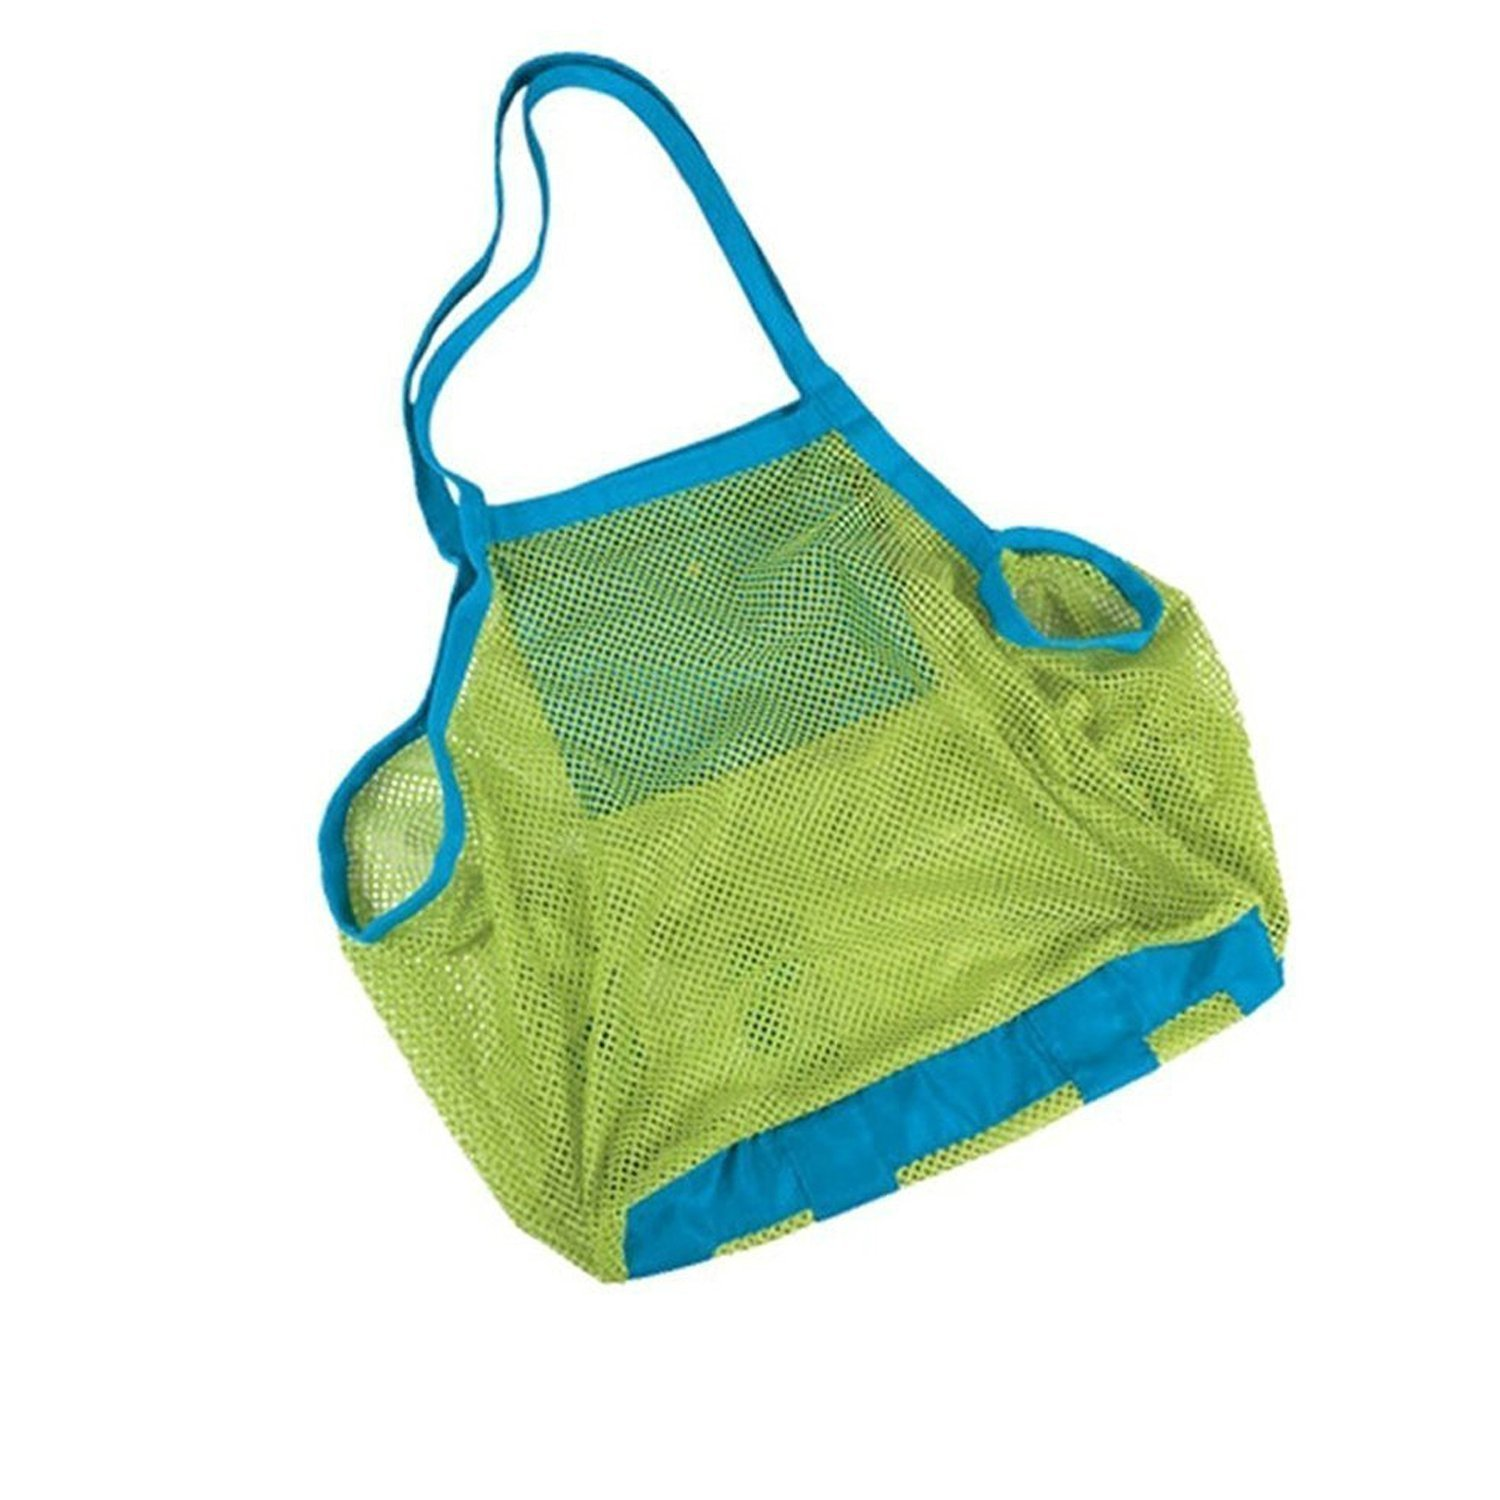 Qzc Sand Away Beach Mesh Bag Extra Large Mesh Bag Tote, Baby Collection Nappy, Organizer Storage Bag for Children Beach Toys, Clothes ^Qzc